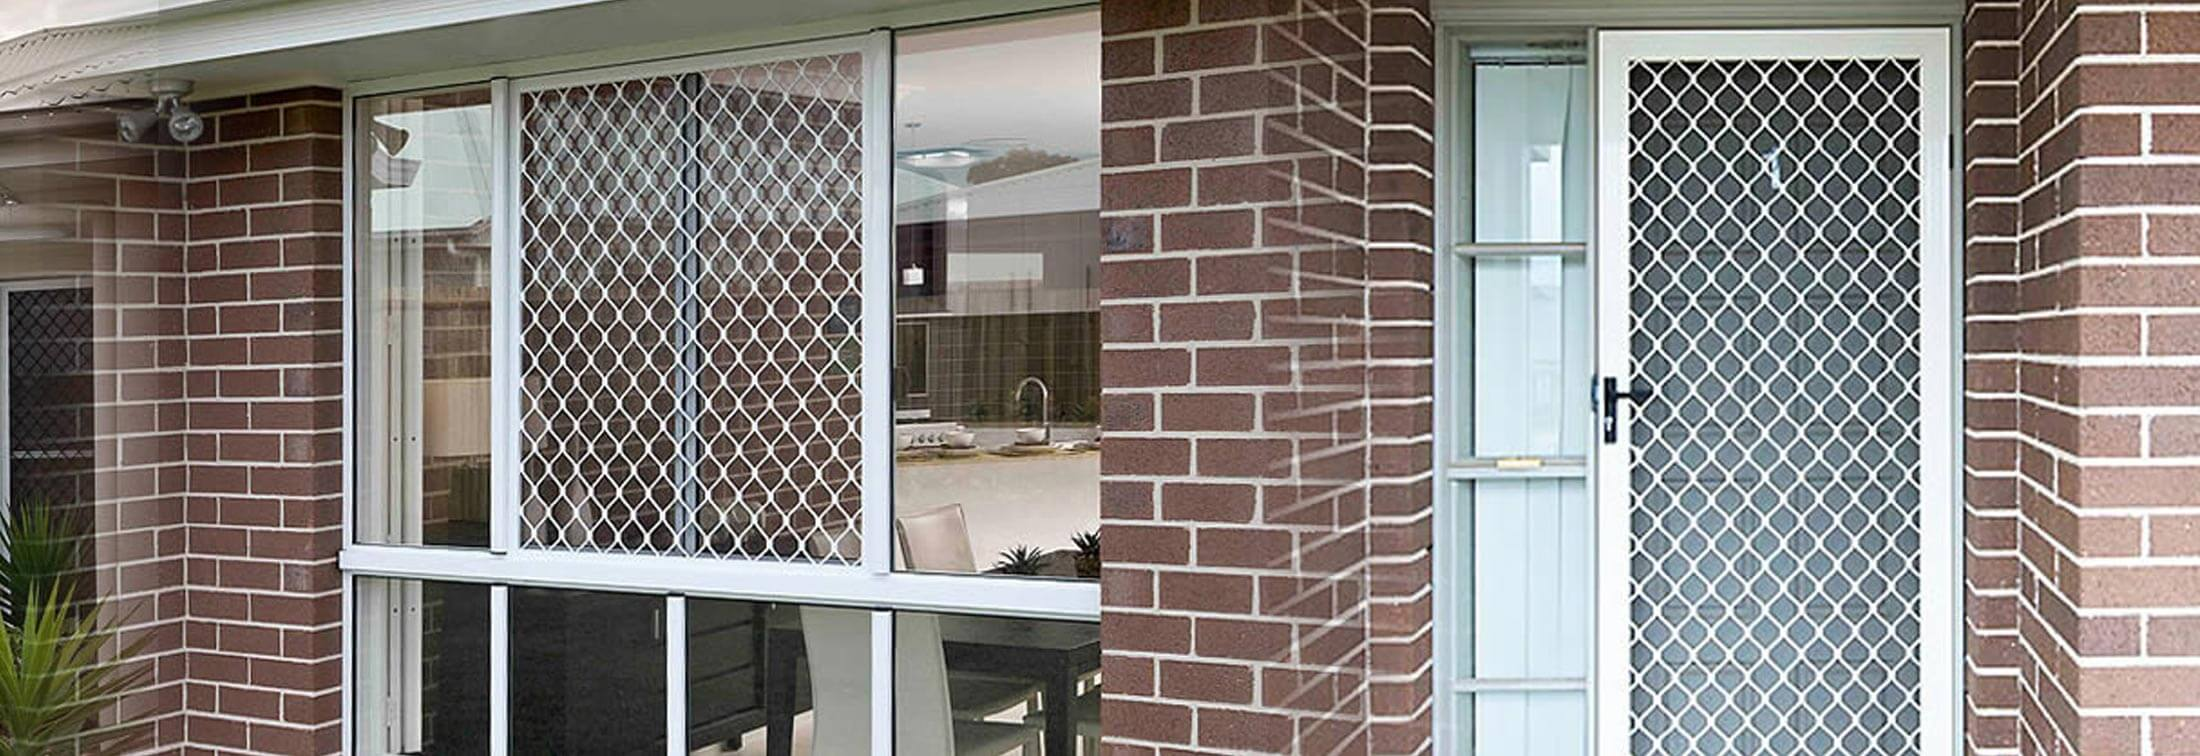 diamond grille security door adelaide : grille door - pezcame.com